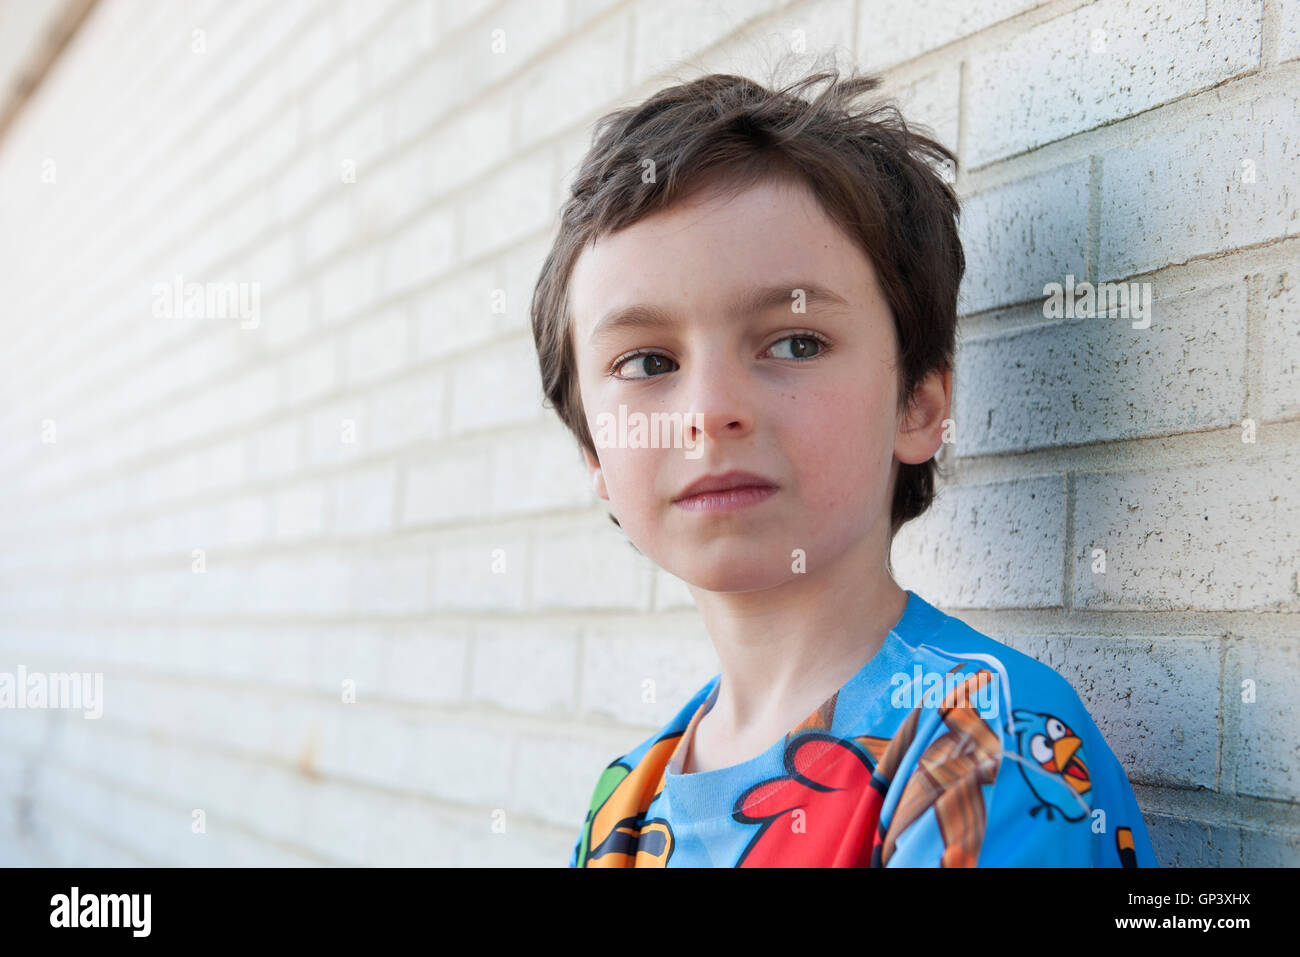 Boy looking away in thought, portrait - Stock Image